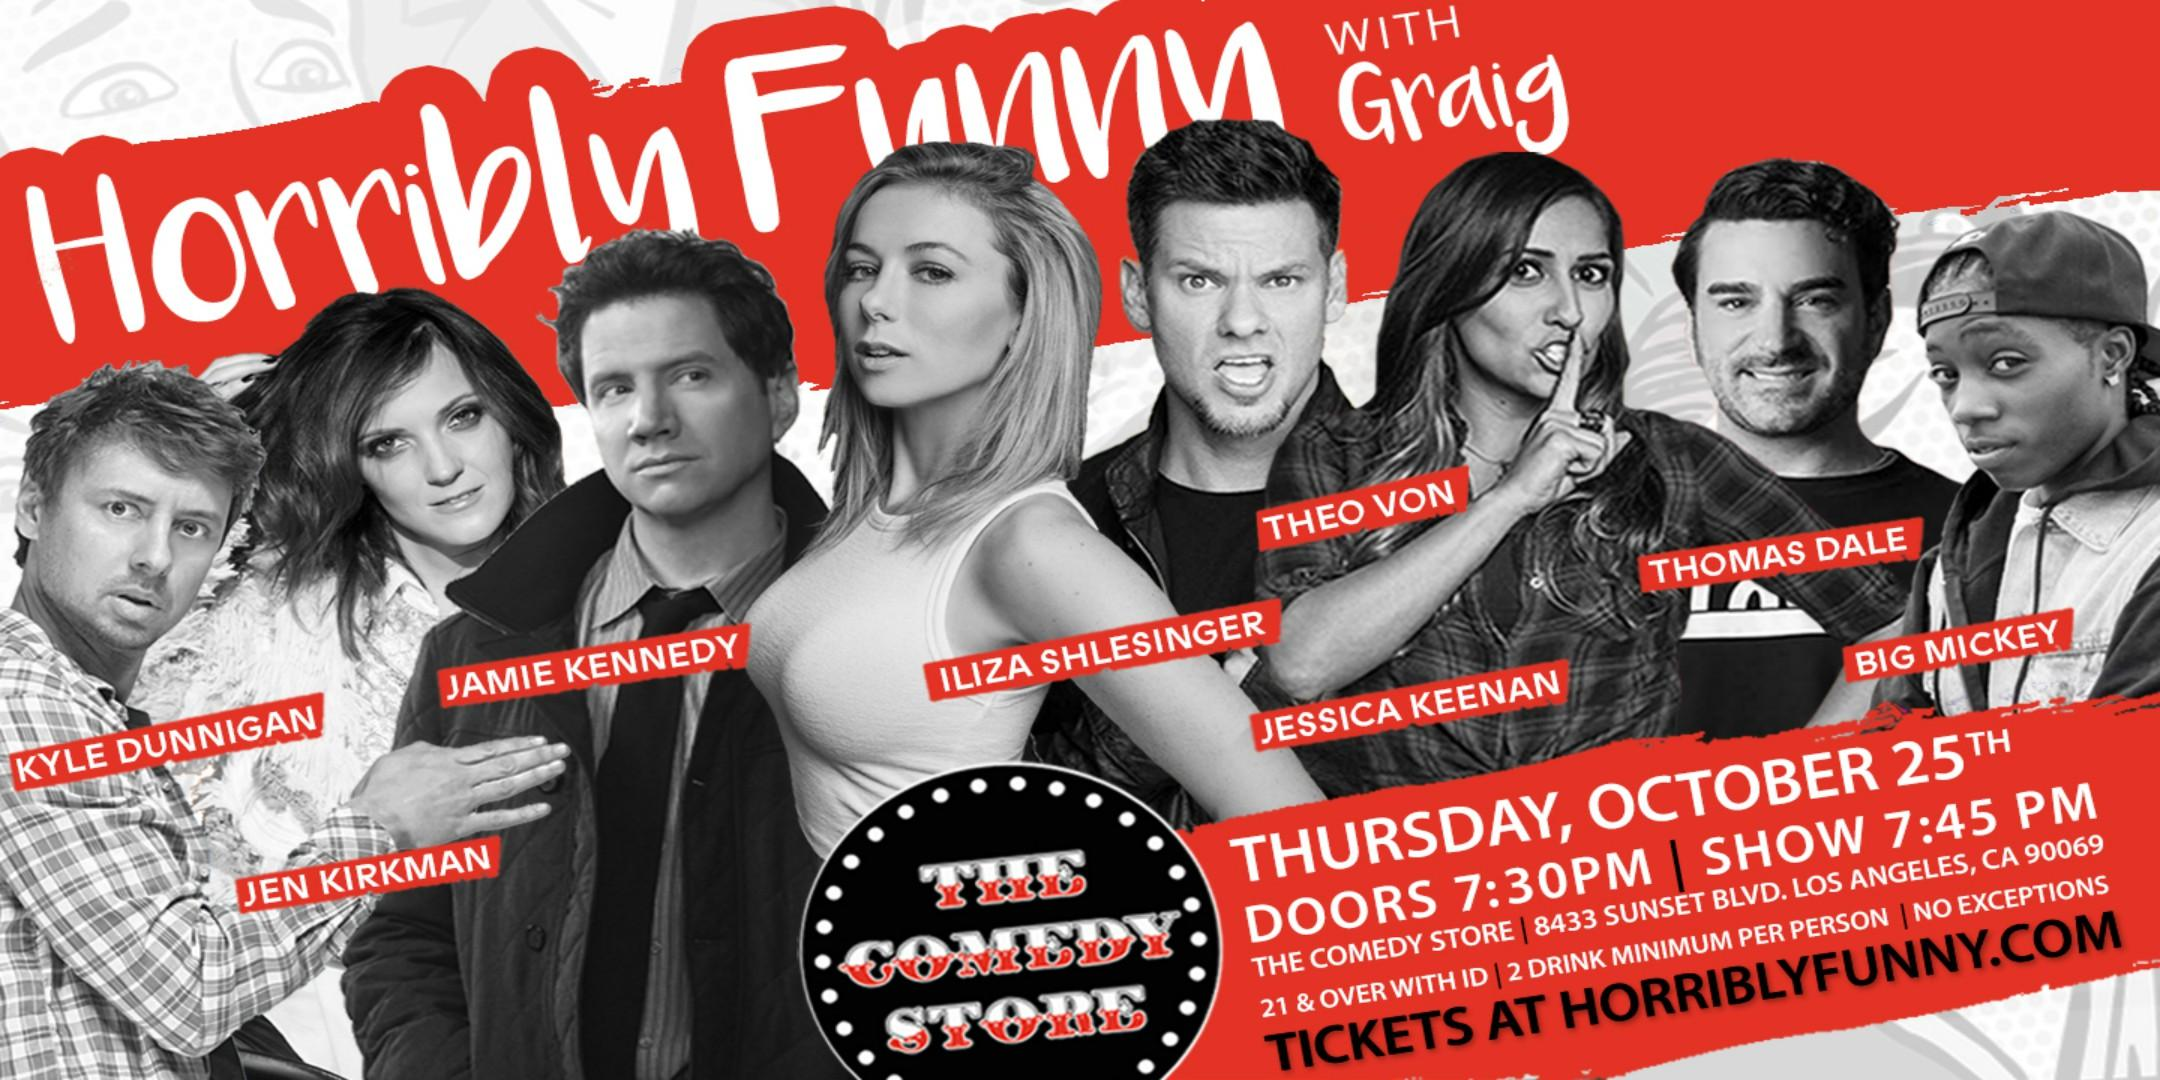 Horribly Funny with Iliza Shlesinger, Jamie Kennedy, Theo Von, +more!